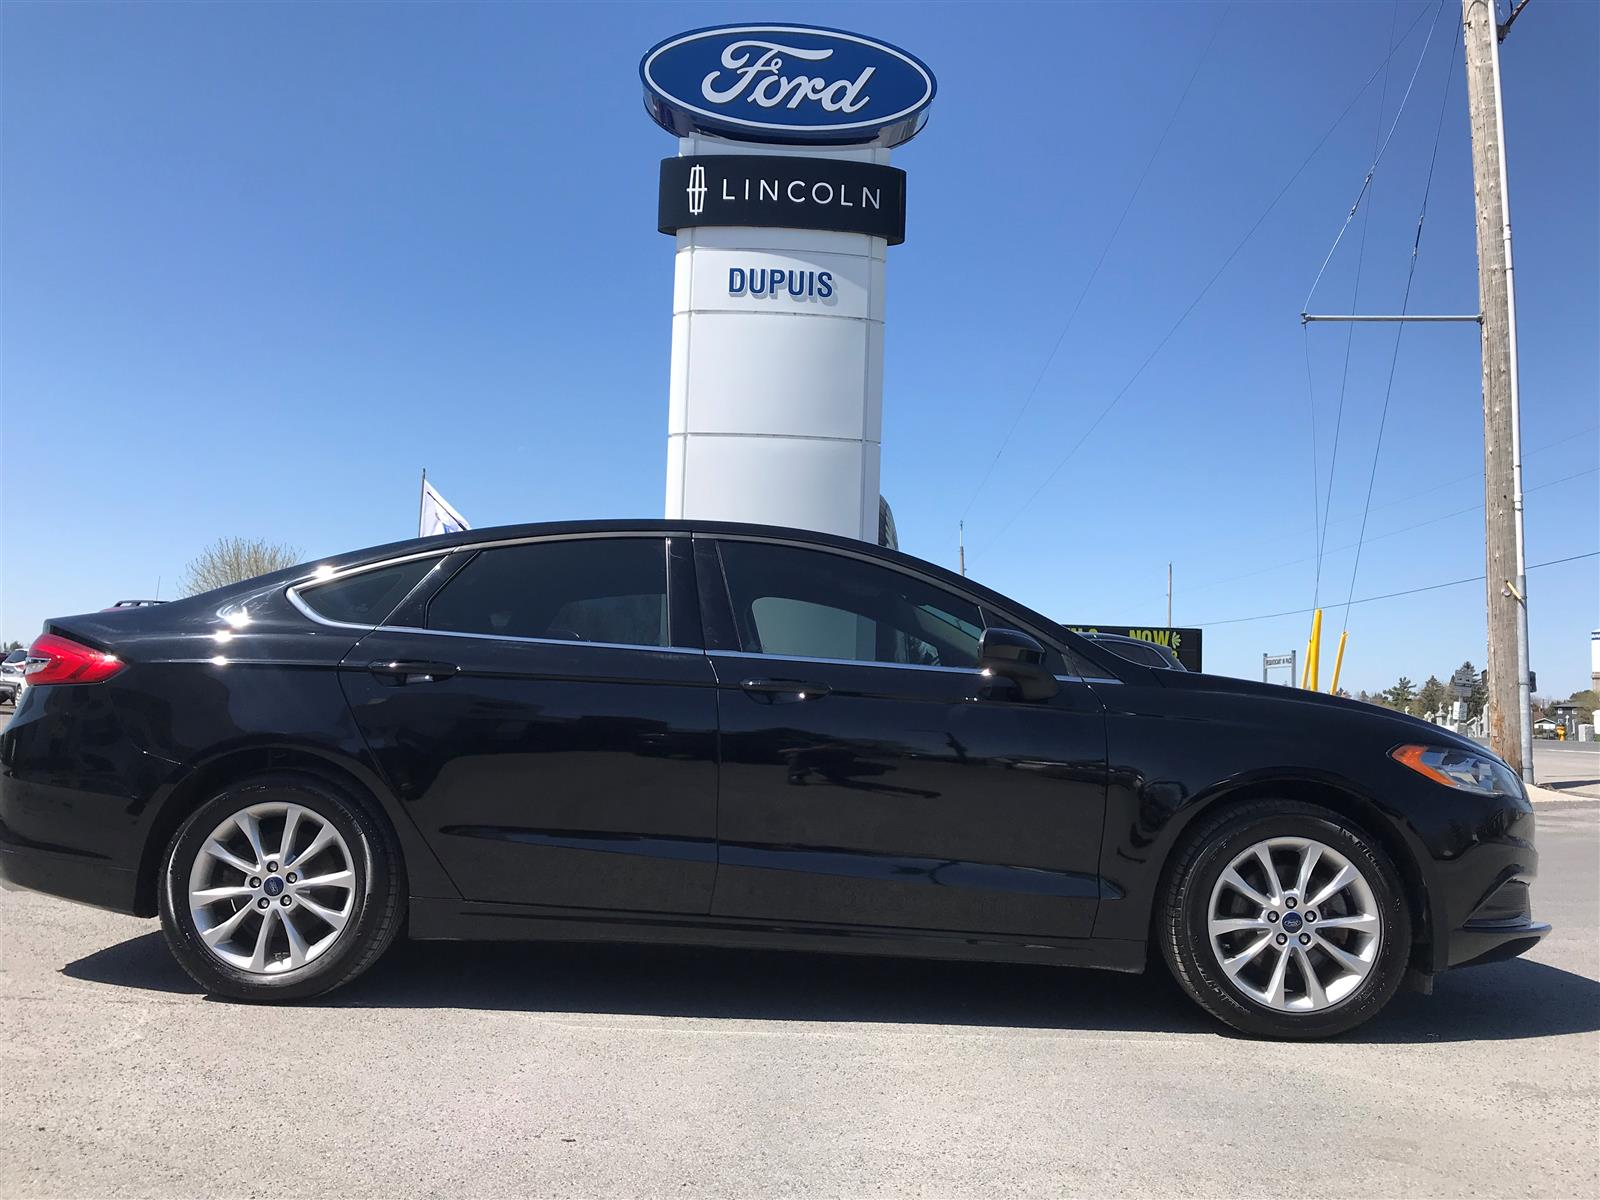 Used Vehicle Offers Casselman Ford Dealer Dupuis Ford Lincoln